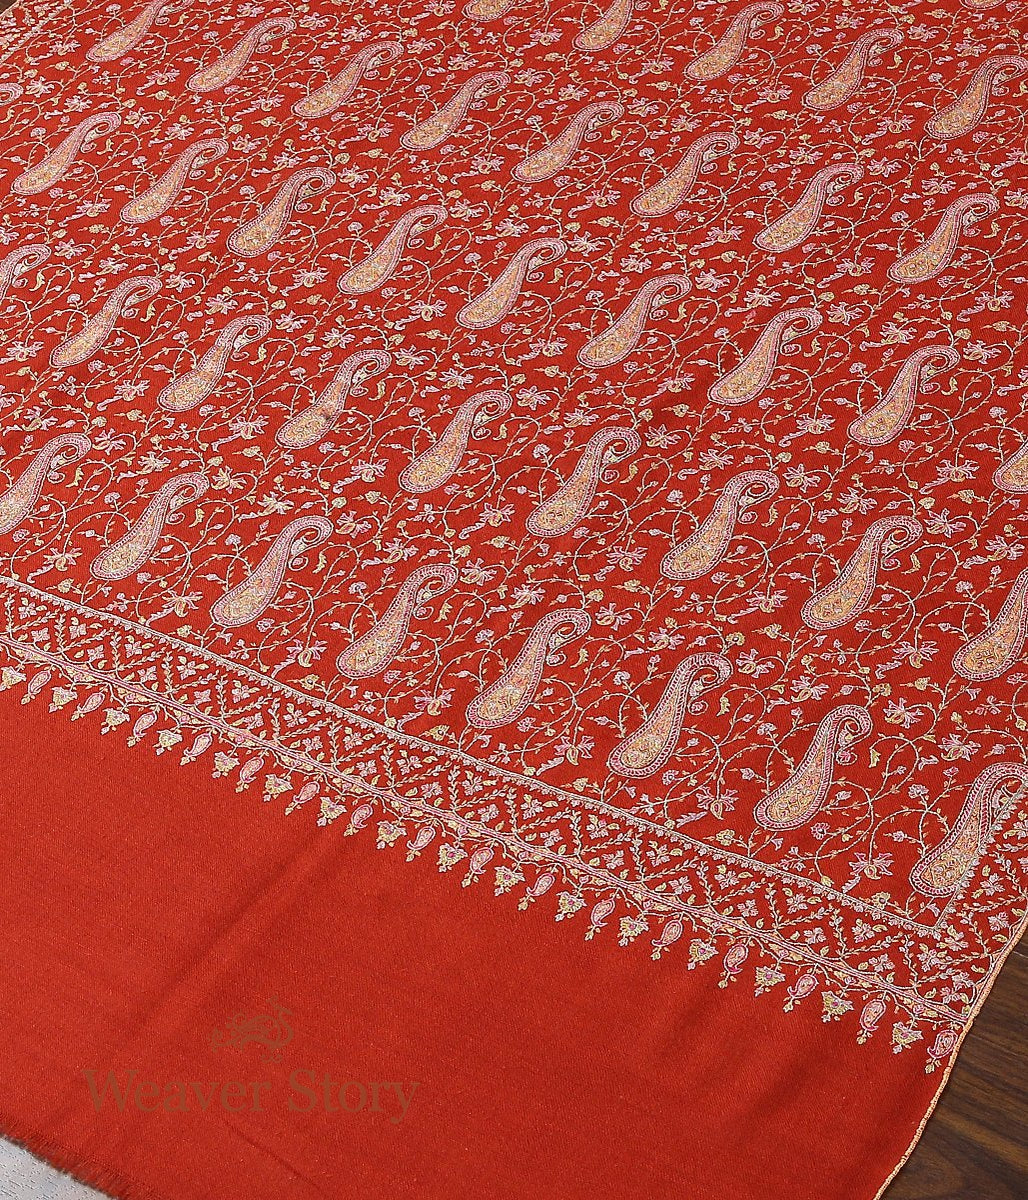 Brick Red Hand Spun and Hand Woven Pure Pashmina Shawl with Sozni Embroidery